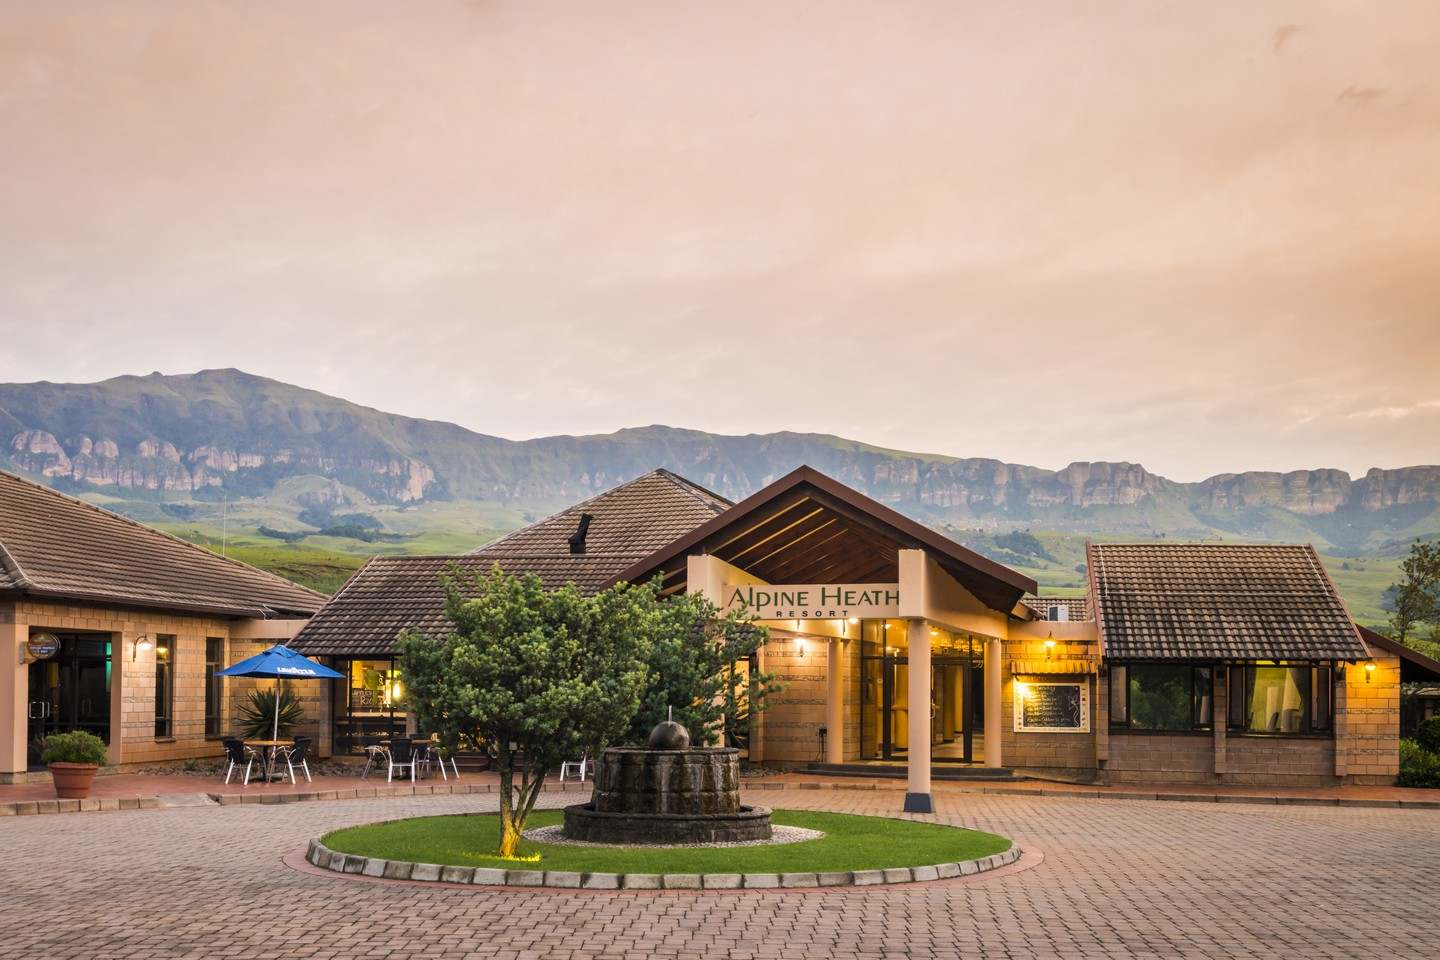 Aha alpine heath resort bergville south africa for The alpine lodge